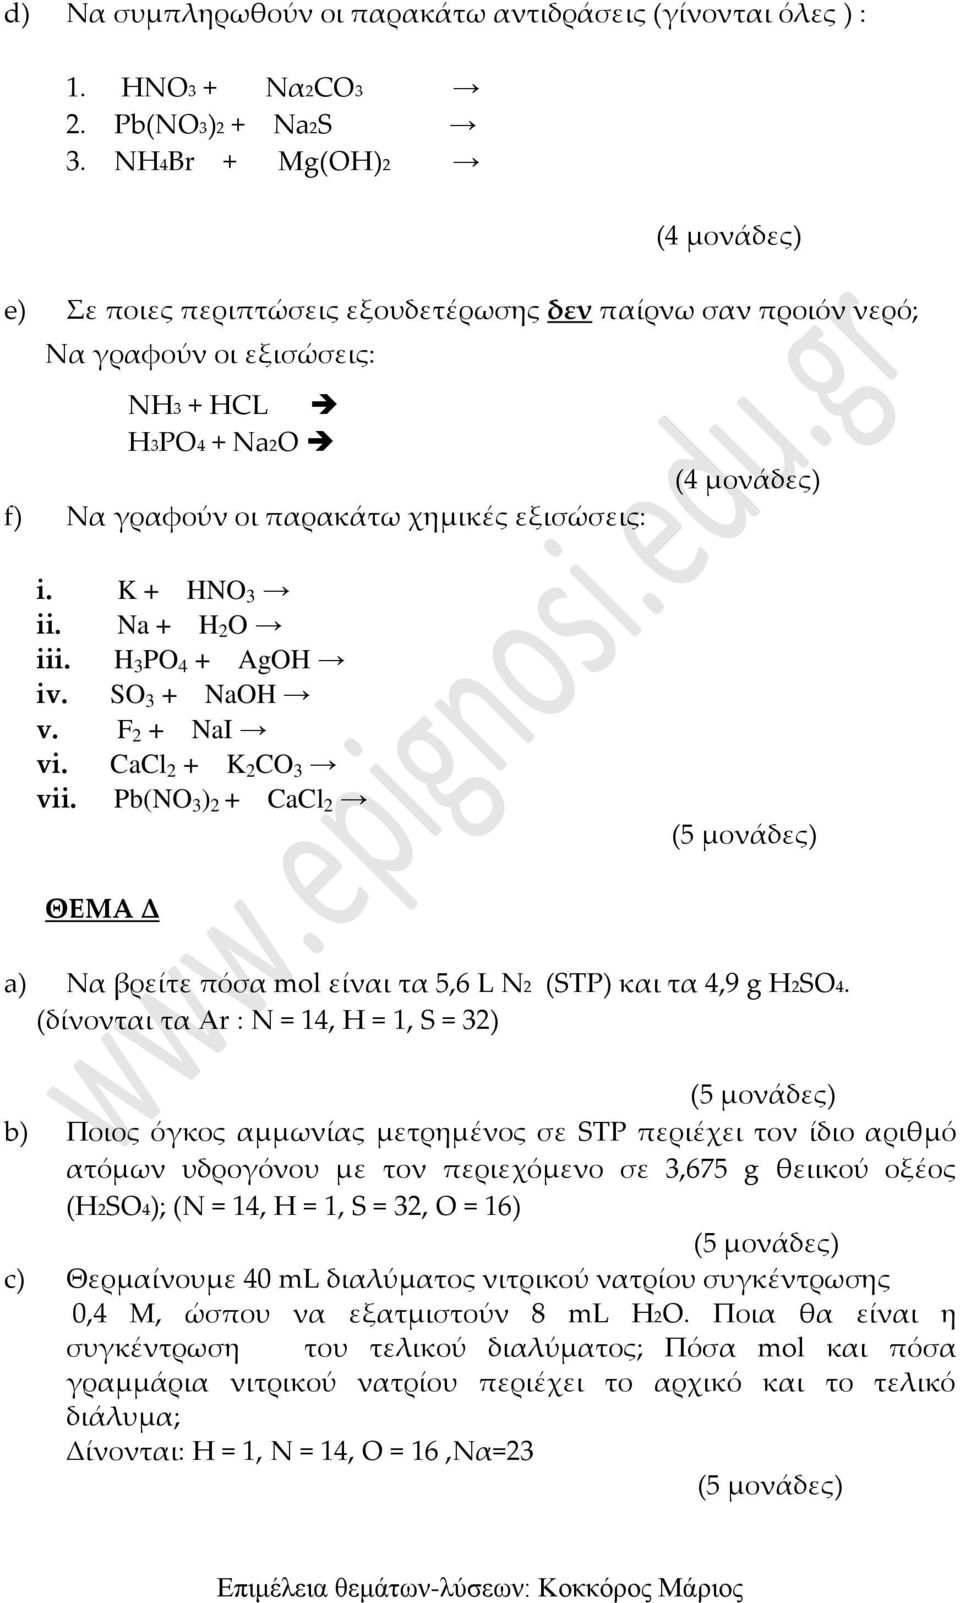 Na + H 2 O iii. H 3 PO 4 + AgOH iv. SO 3 + NaOH v. F 2 + NaI vi. CaCl 2 + K 2 CO 3 vii. Pb(NO 3 ) 2 + CaCl 2 ΘΕΜΑ Δ a) Να βρείτε πόσα mol είναι τα 5,6 L Ν2 (STP) και τα 4,9 g H2SO4.